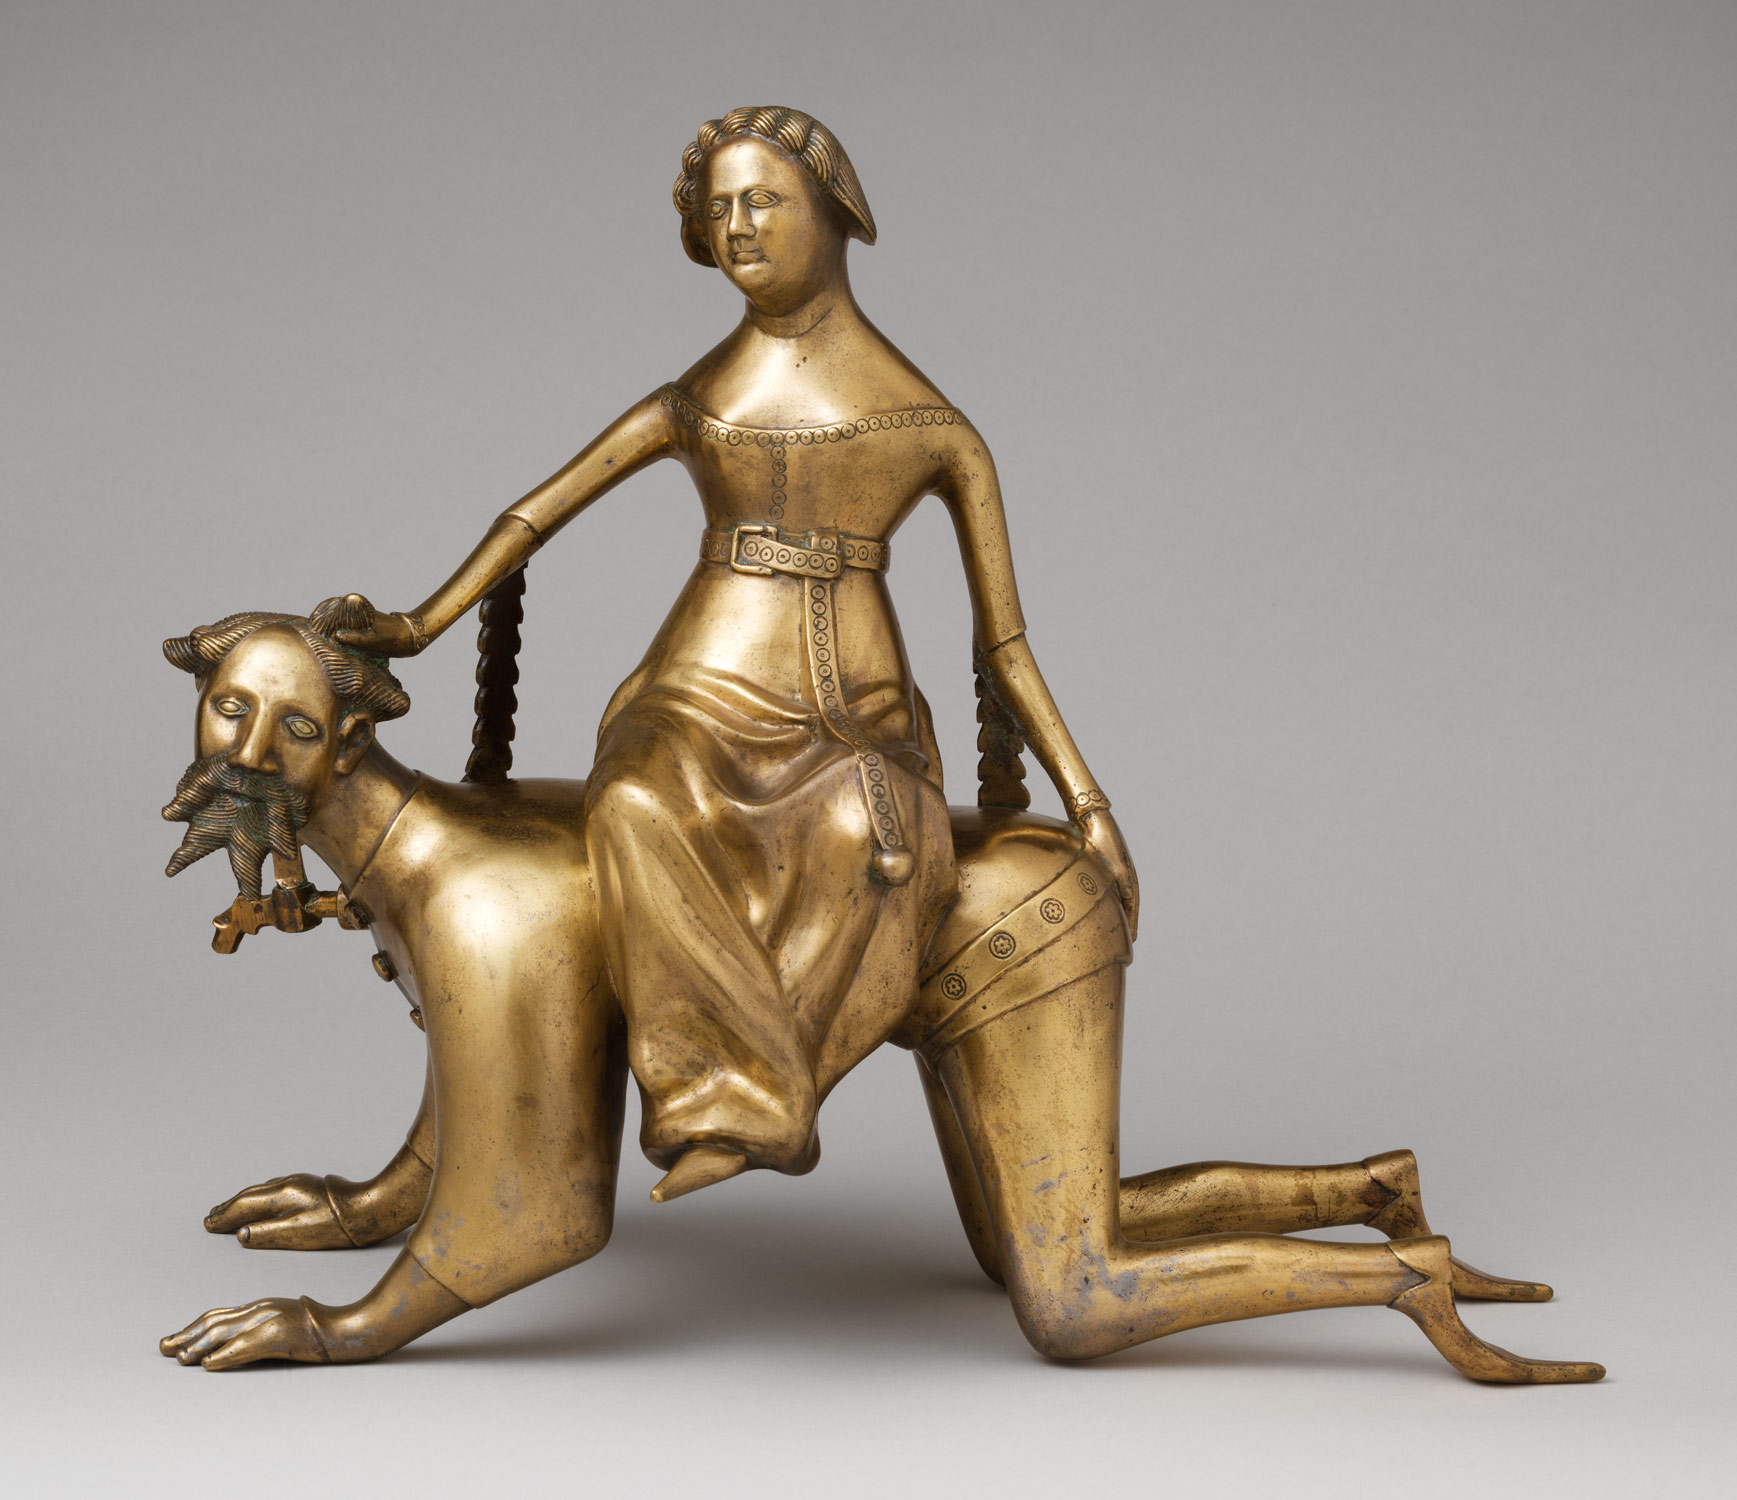 Bronze water holder in shape of a man on his knees and a woman sitting on his back.